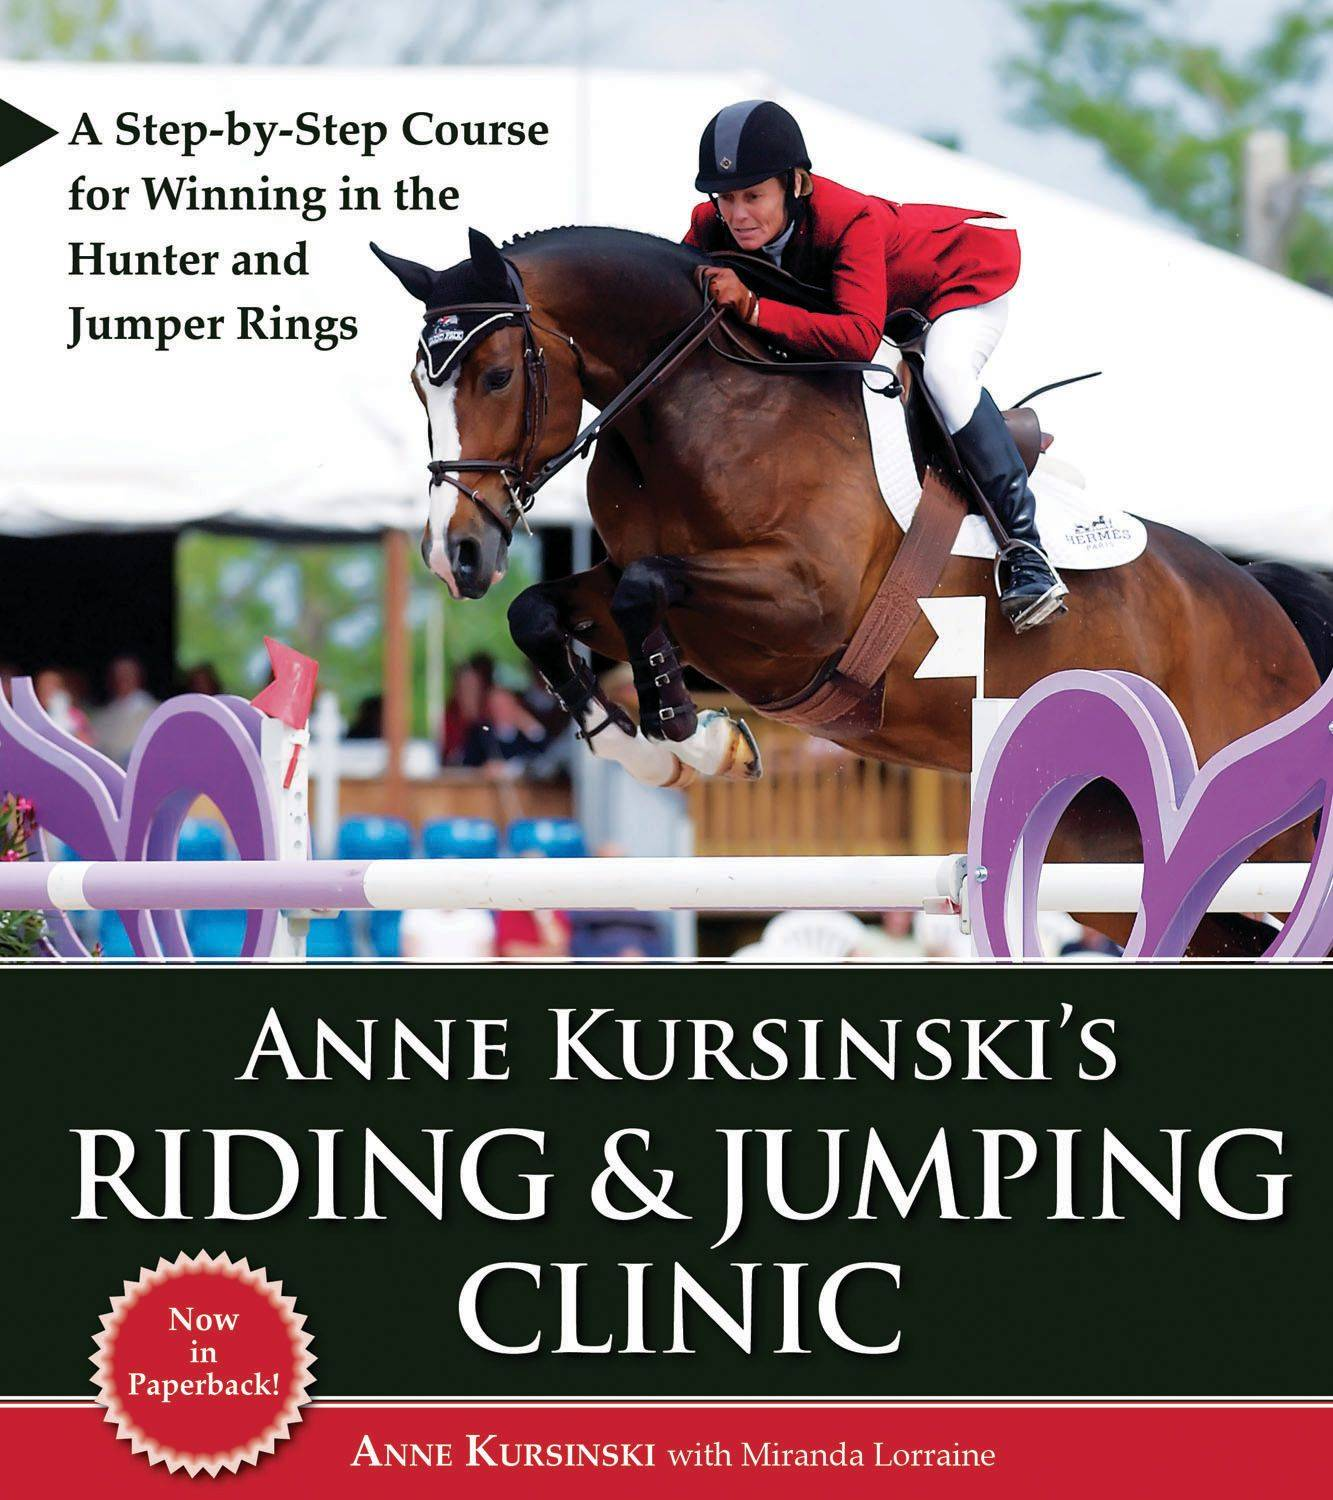 Anne Kursinskis Riding & Jumping Clinic by Anne Kursinski